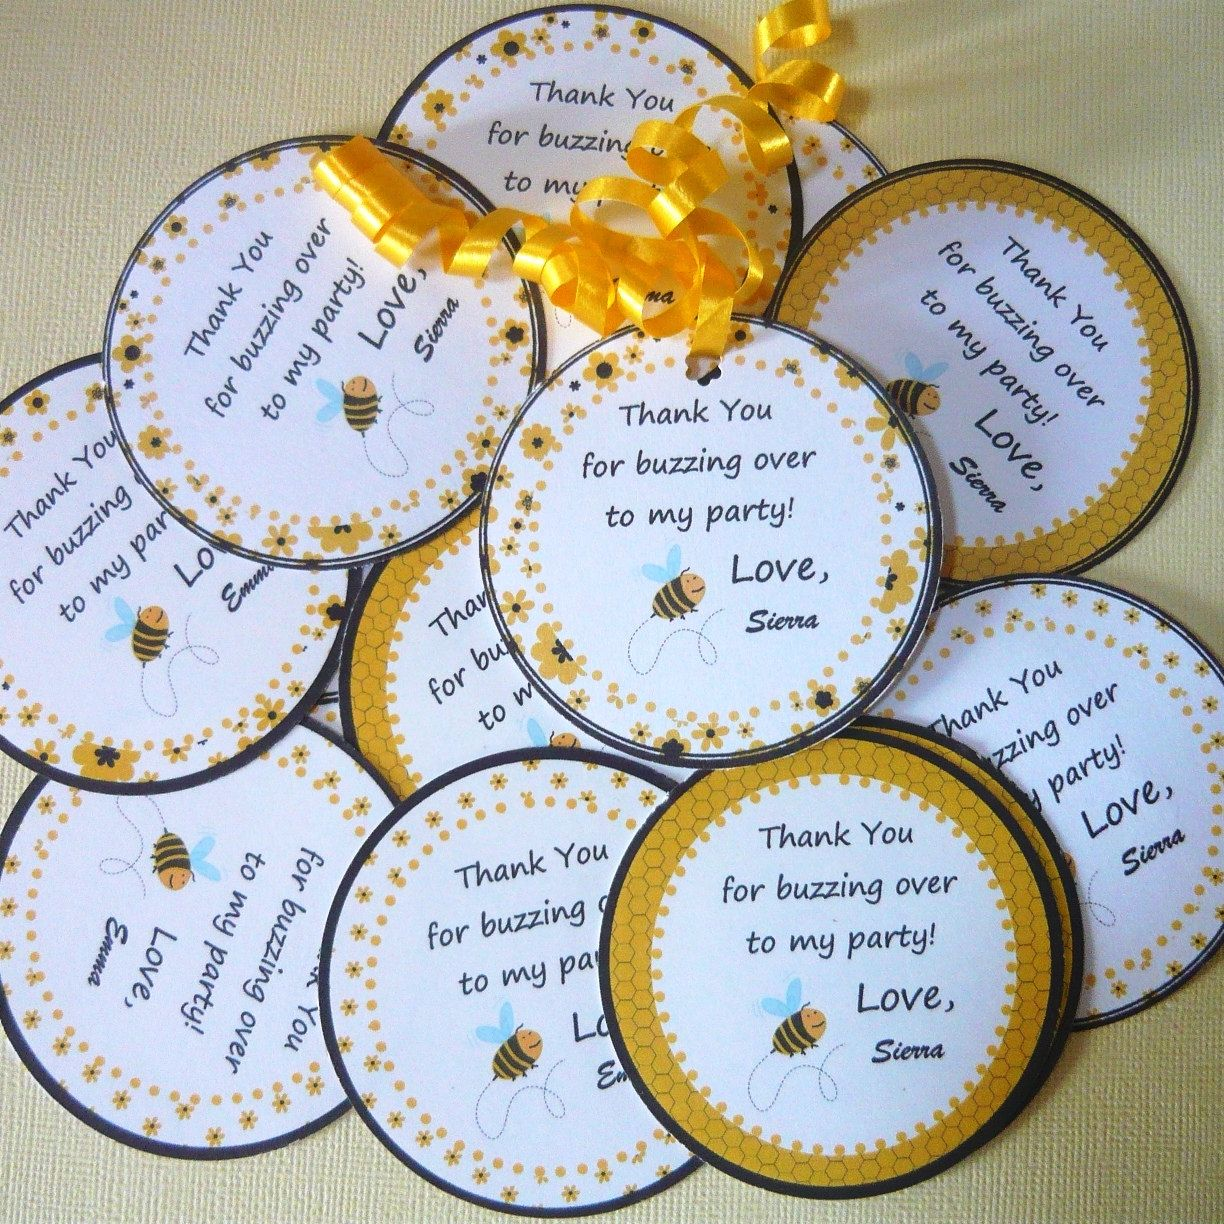 Bumble Bee Tags, labels or stickers (2-3/4